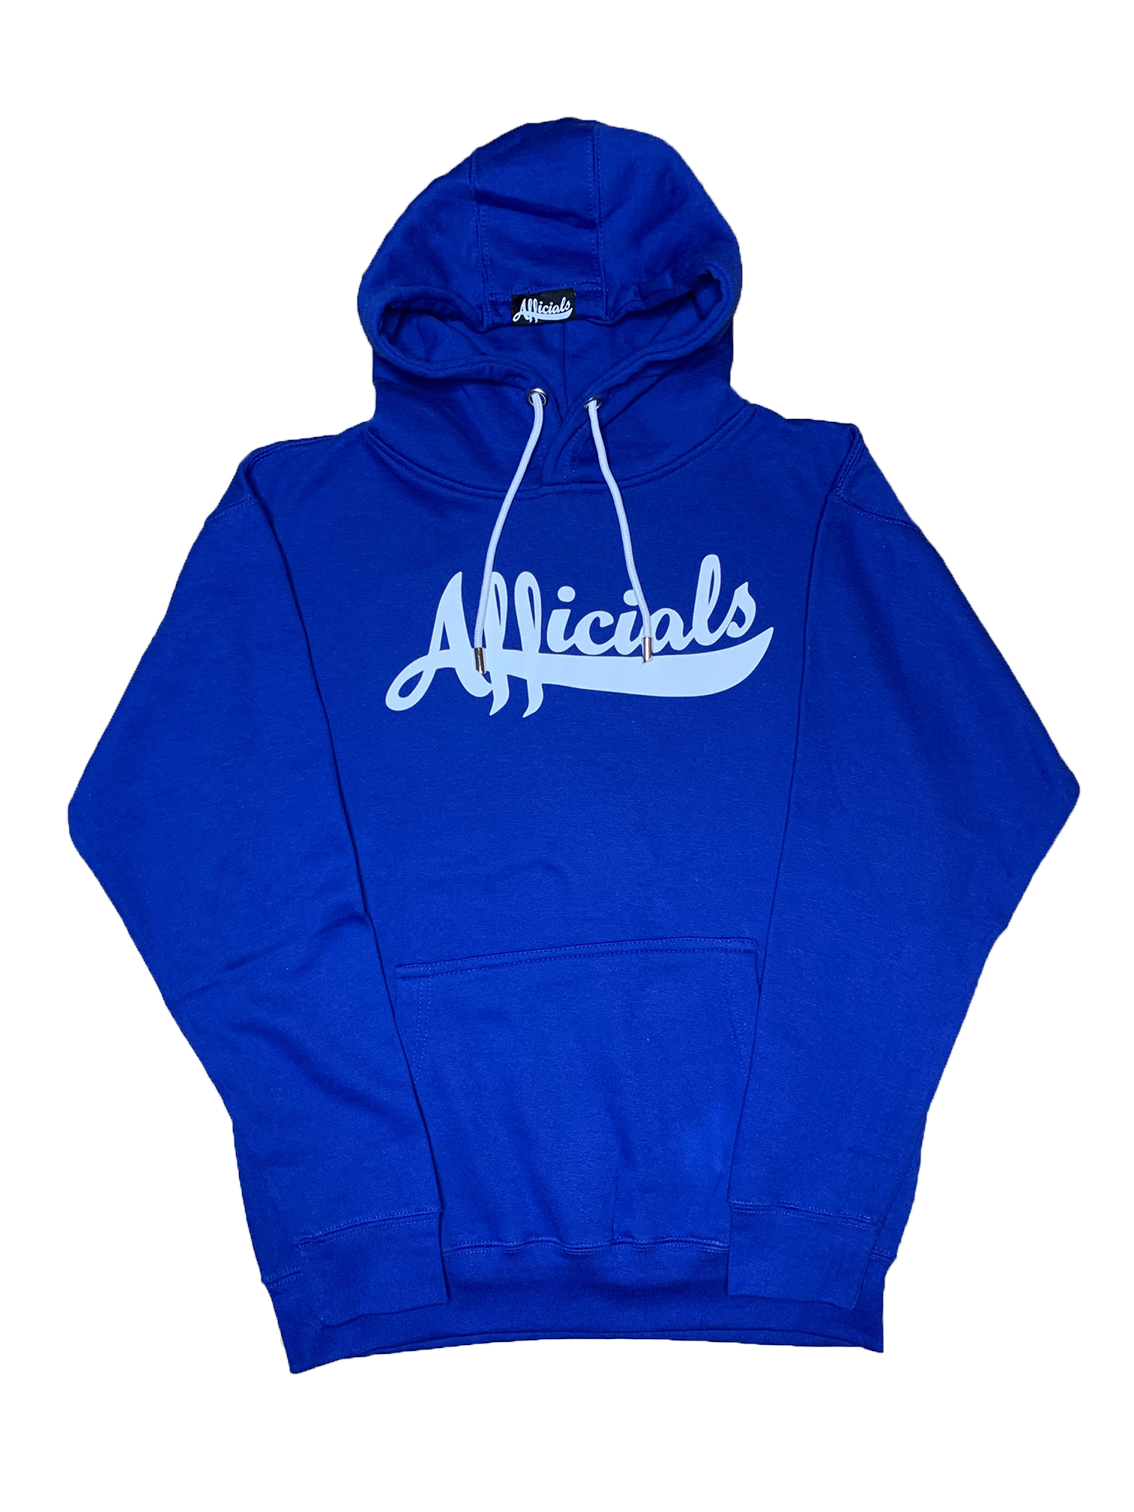 Afficials Signature Hoodie ROYAL BLUE/WHITE